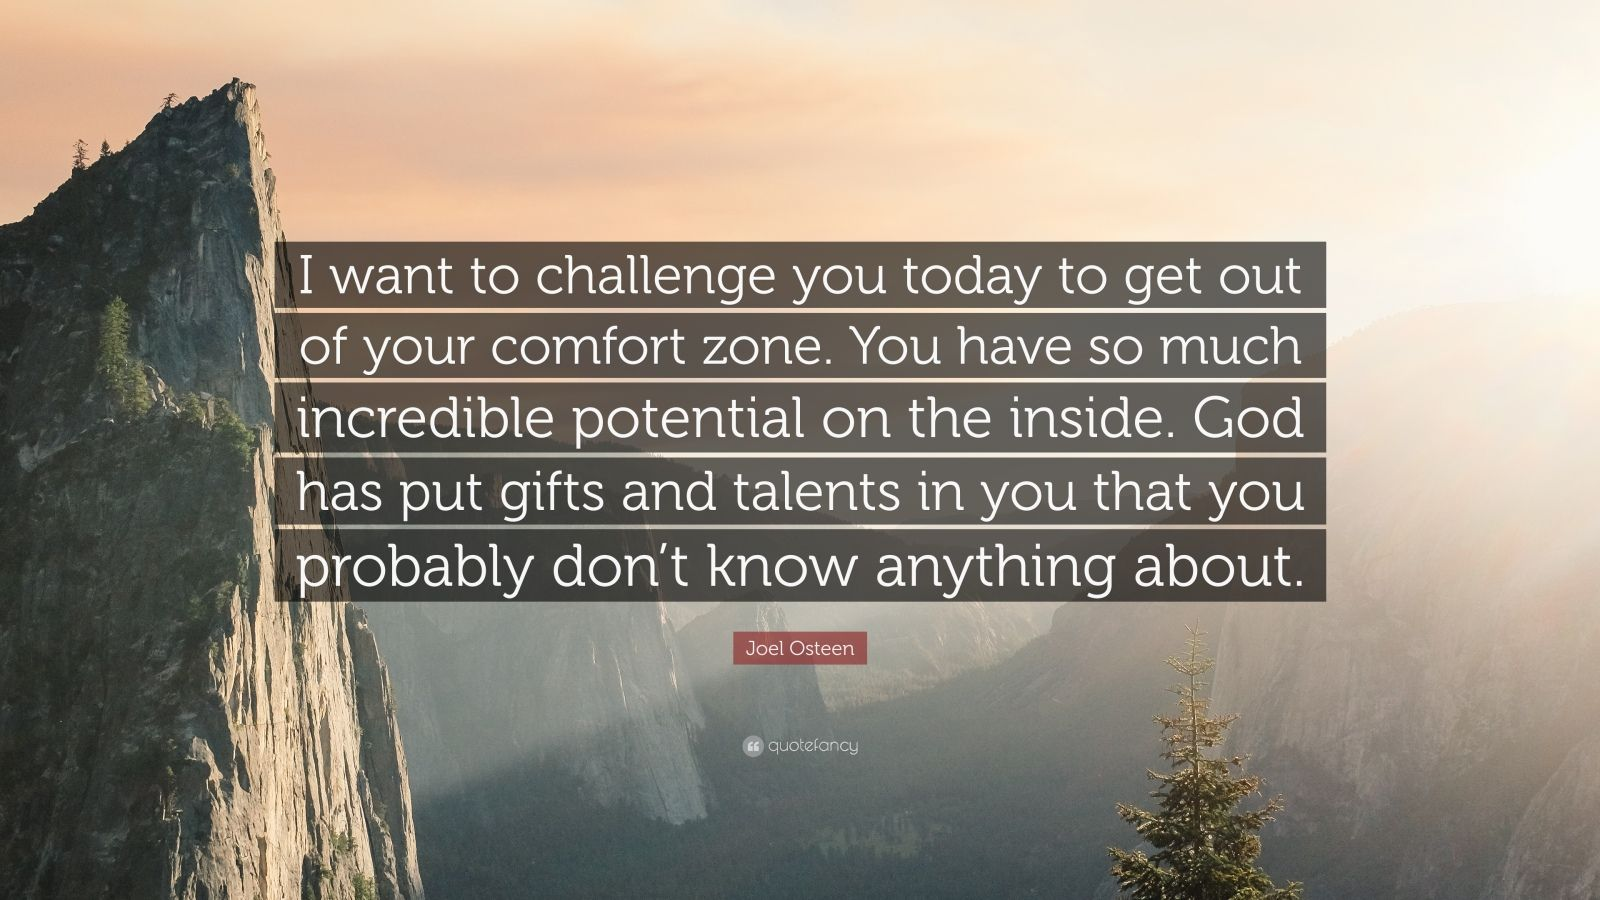 """Joel Osteen Quote: """"I want to challenge you today to get out of your comfort zone. You have so much incredible potential on the inside. God has put gifts and talents in you that you probably don't know anything about."""""""